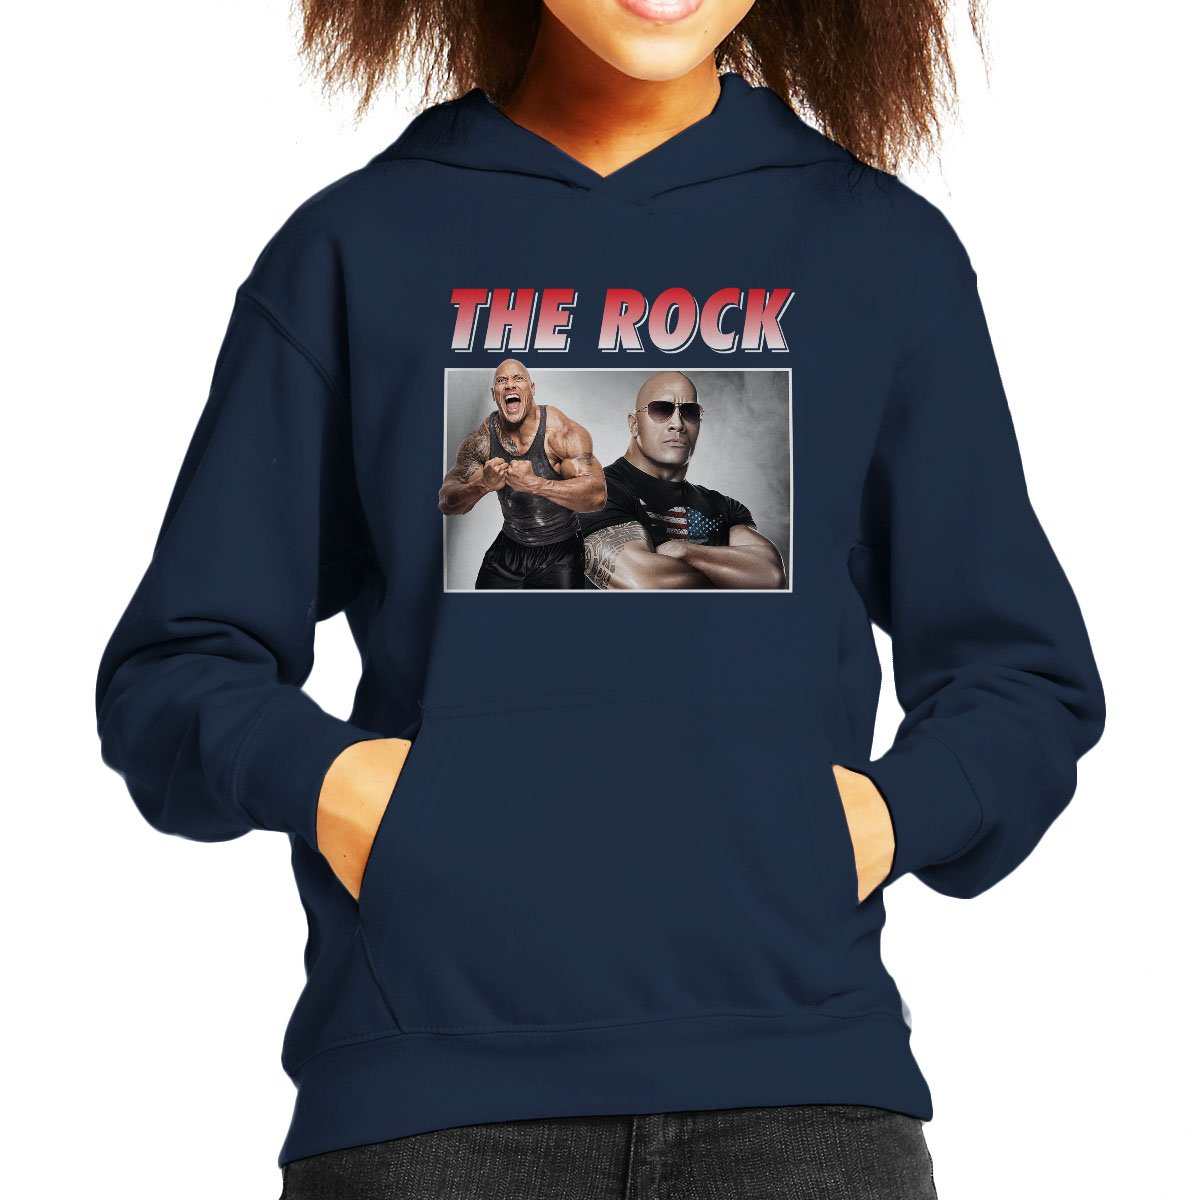 Dwayne The Rock Johnson Montage Kid's Hooded Sweatshirt by Coto7